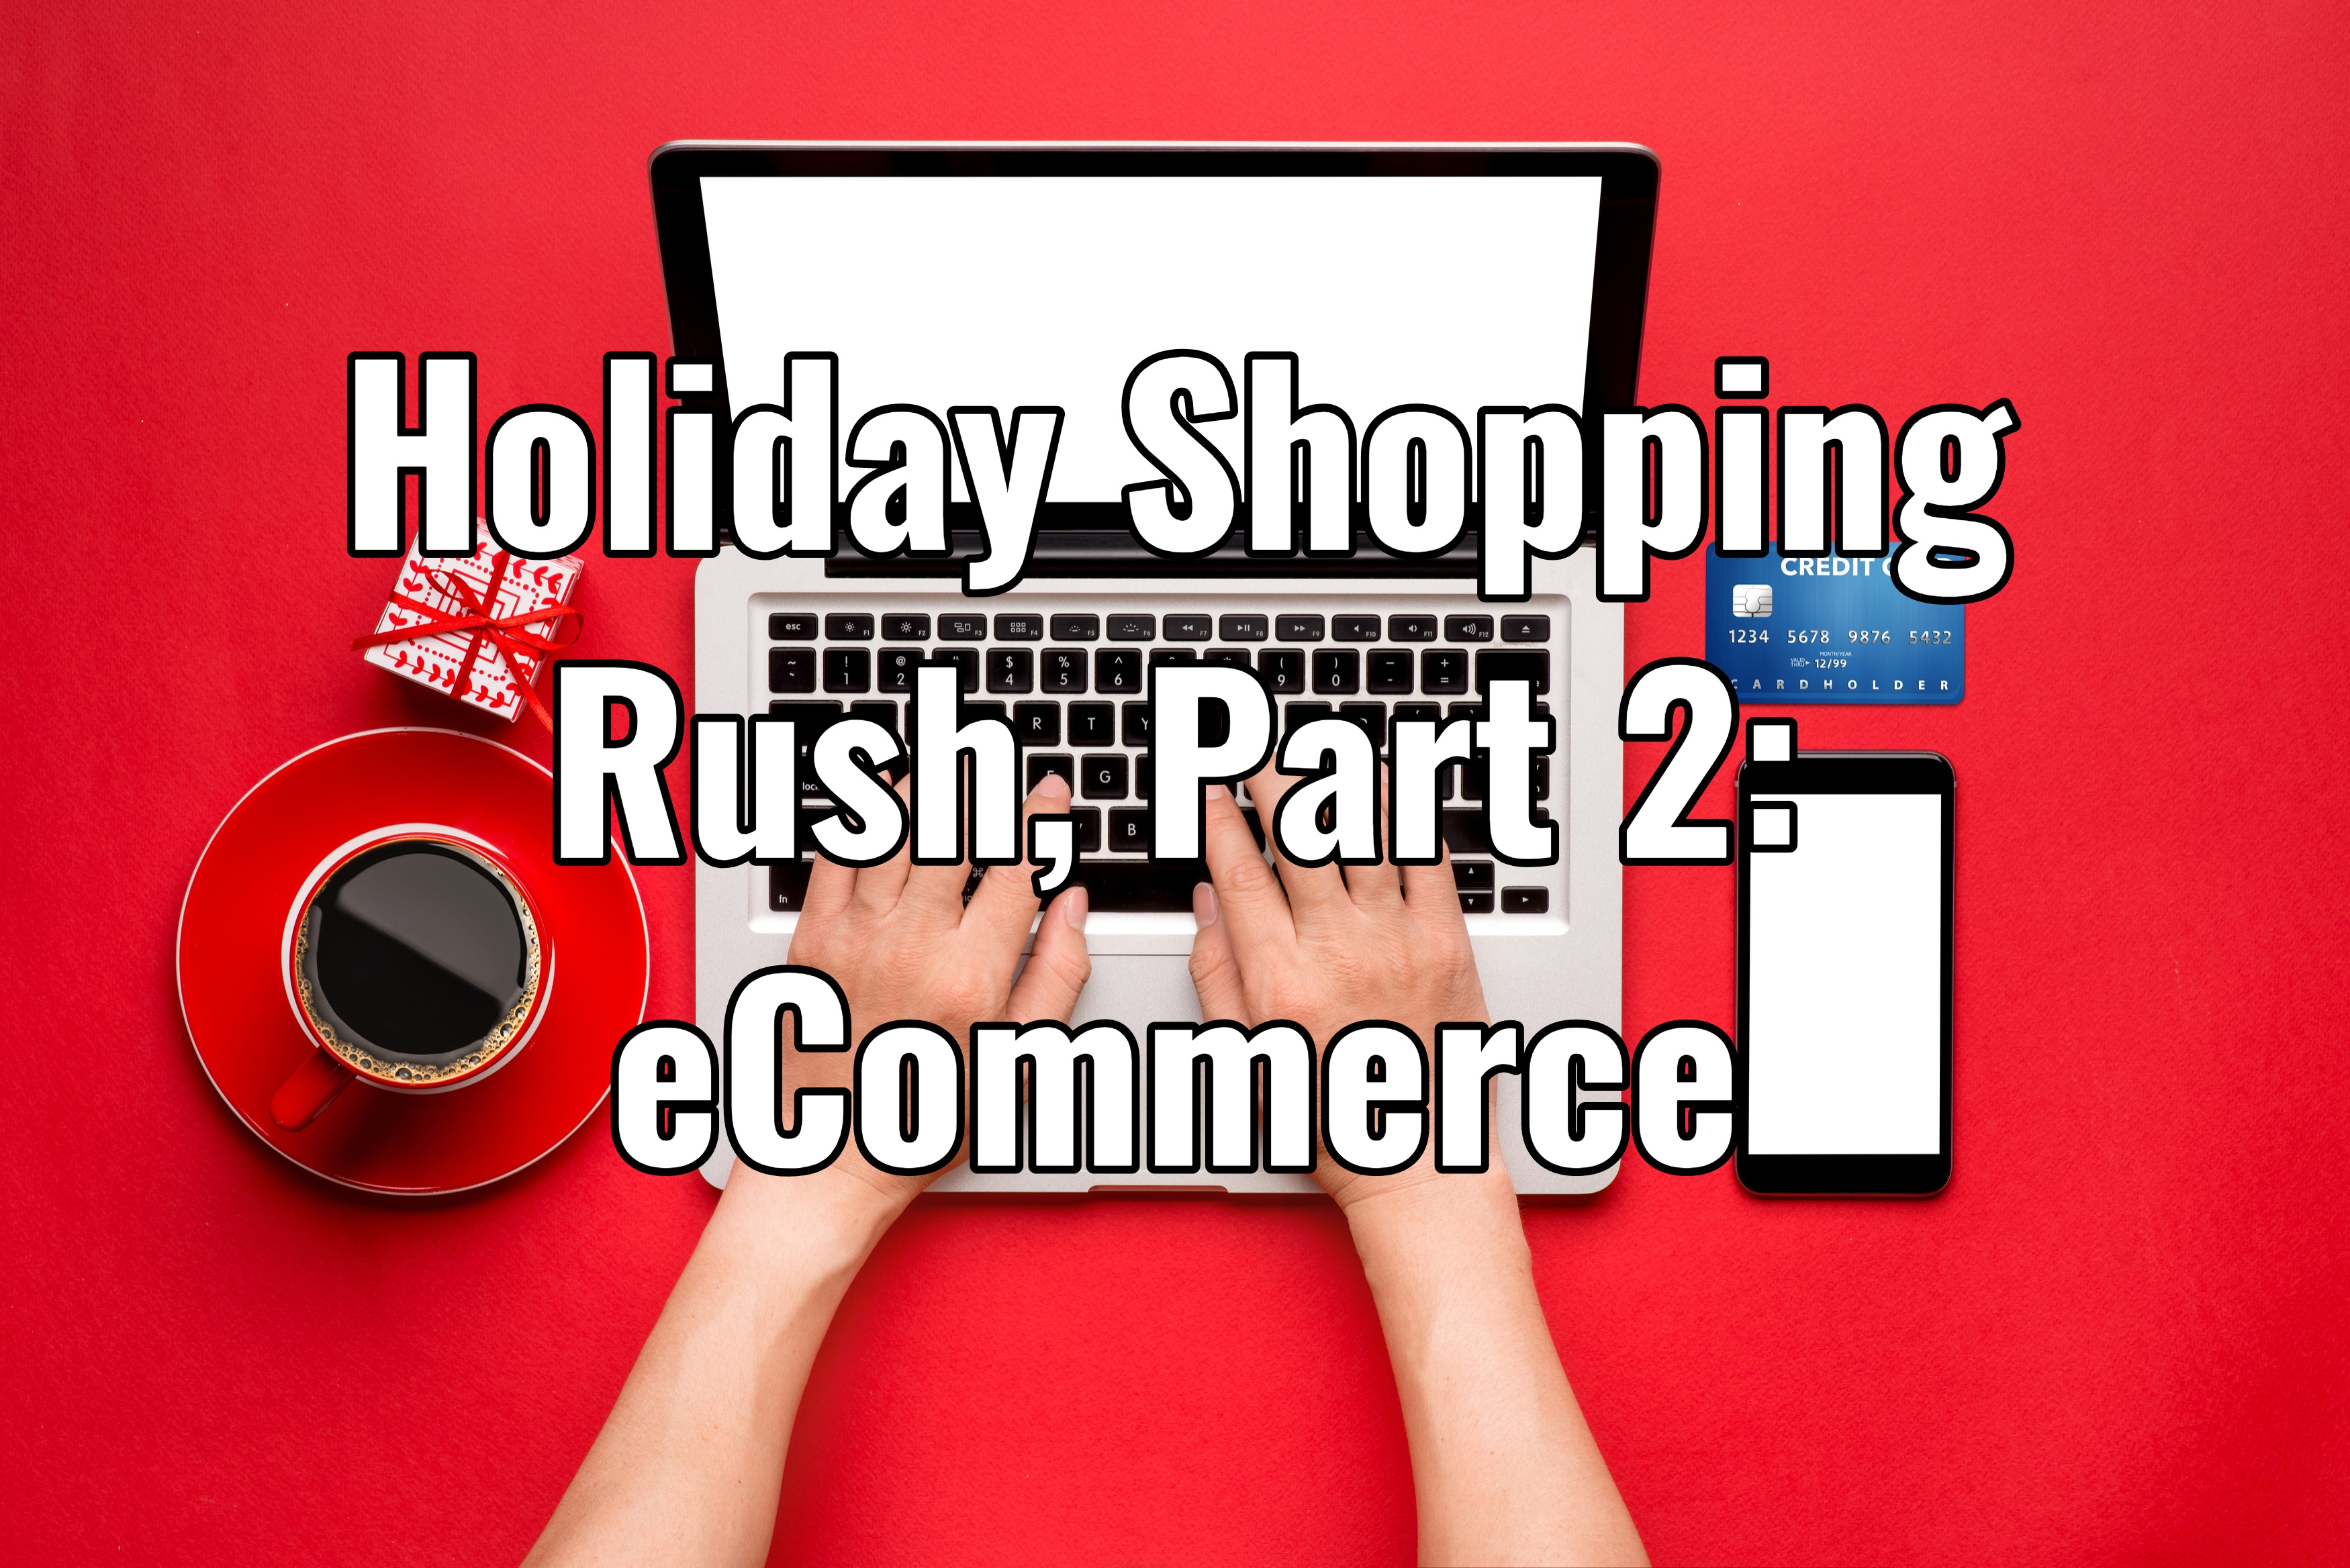 Holiday Shopping Rush, Part 2: eCommerce